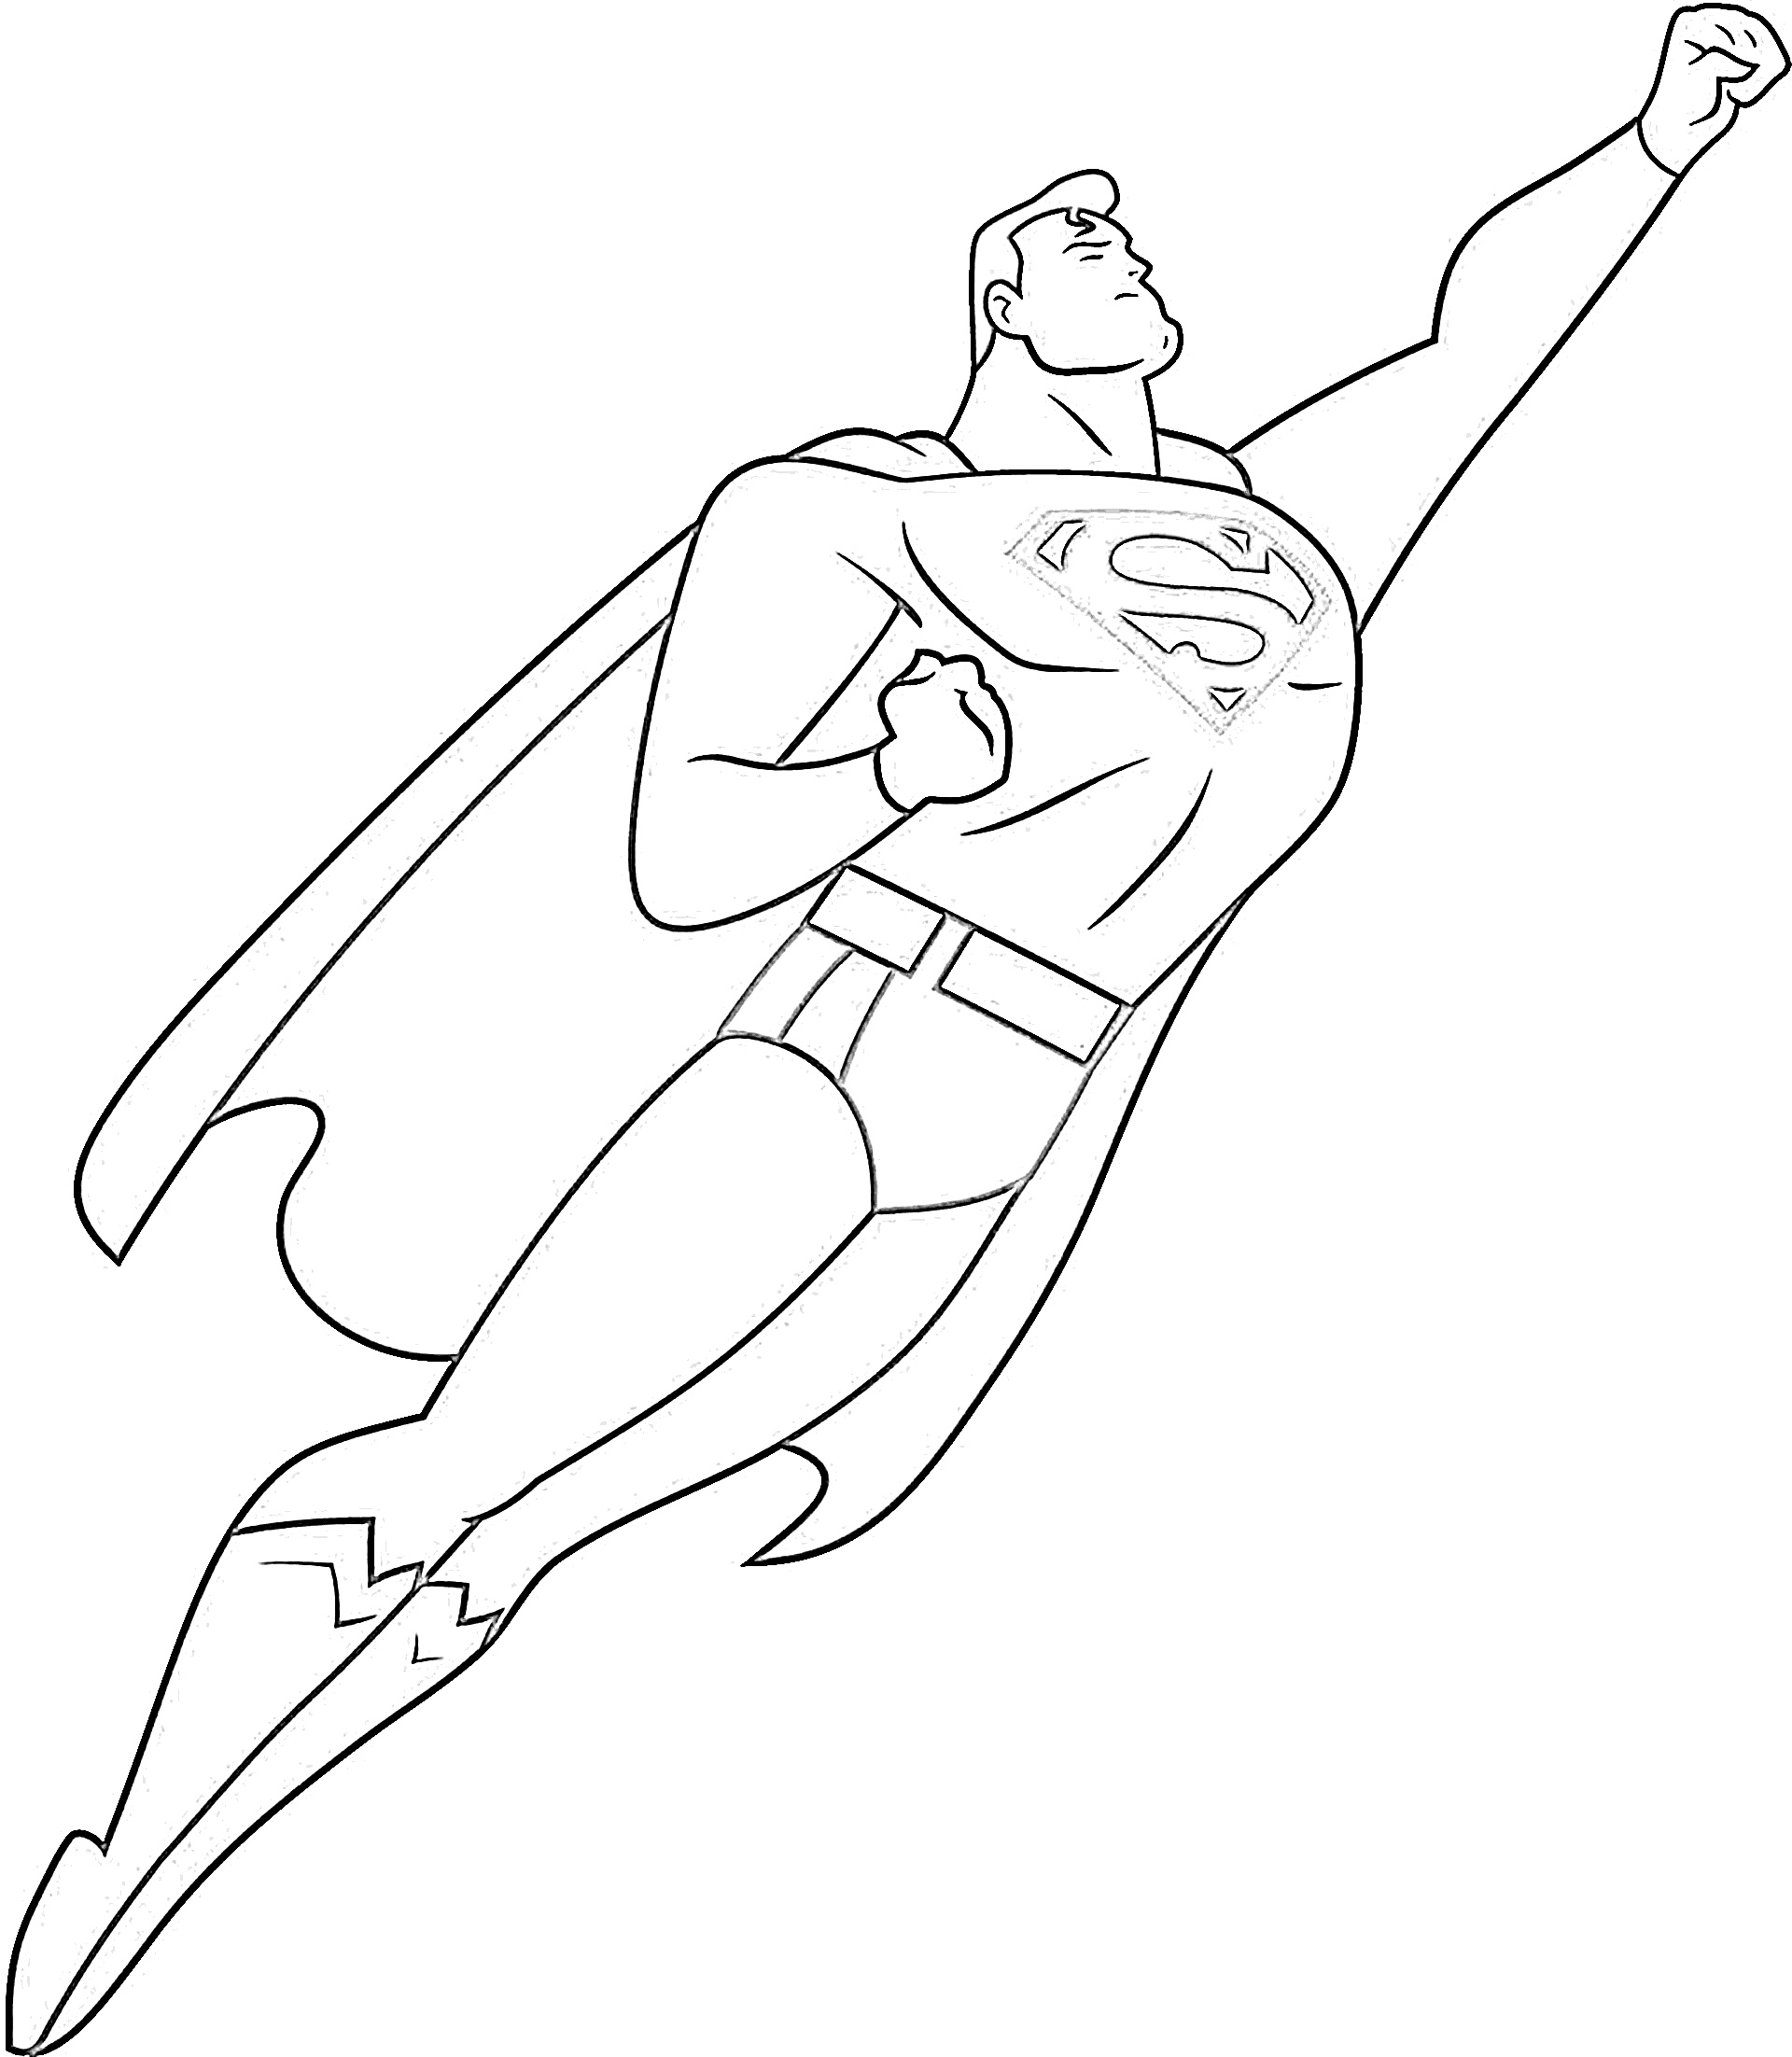 Superman pose coloring page